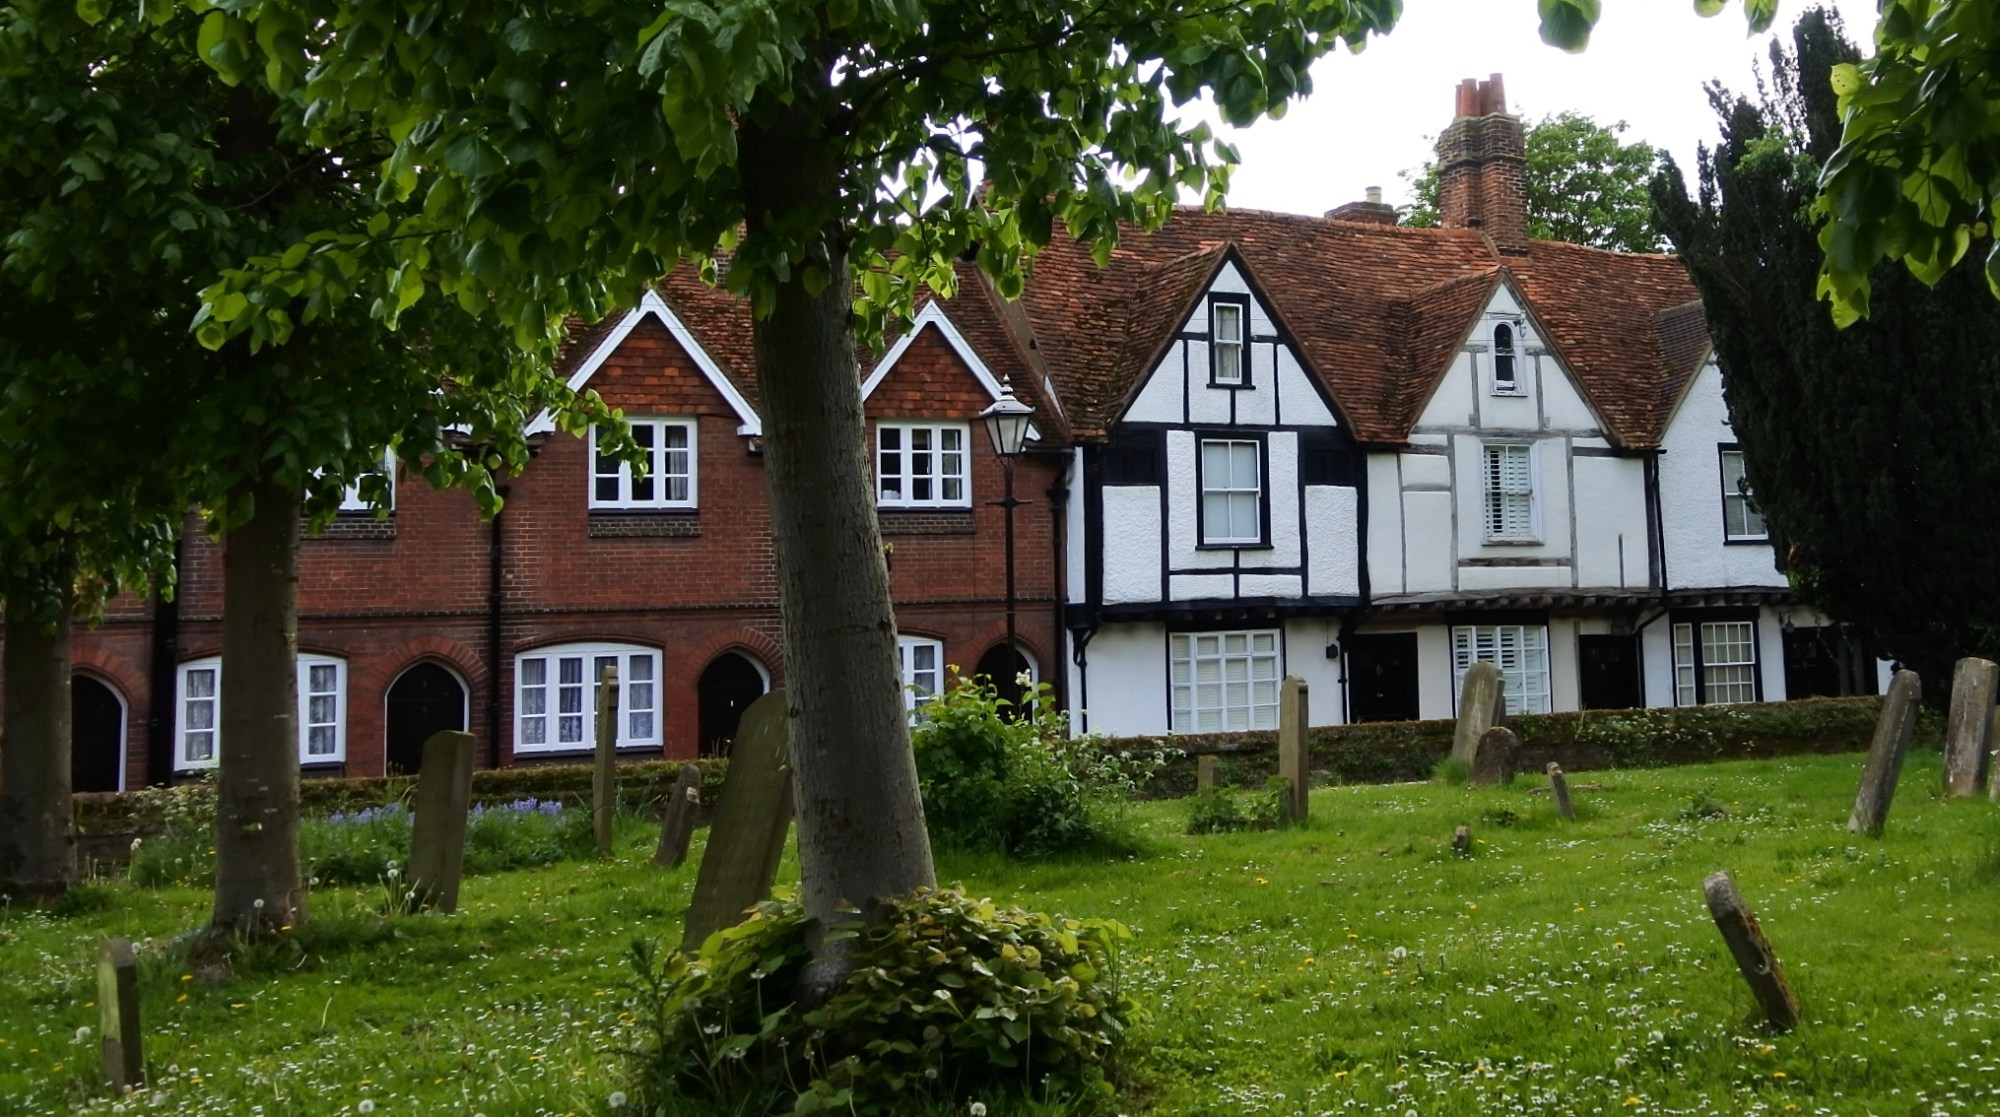 The almshouses of the Chilterns